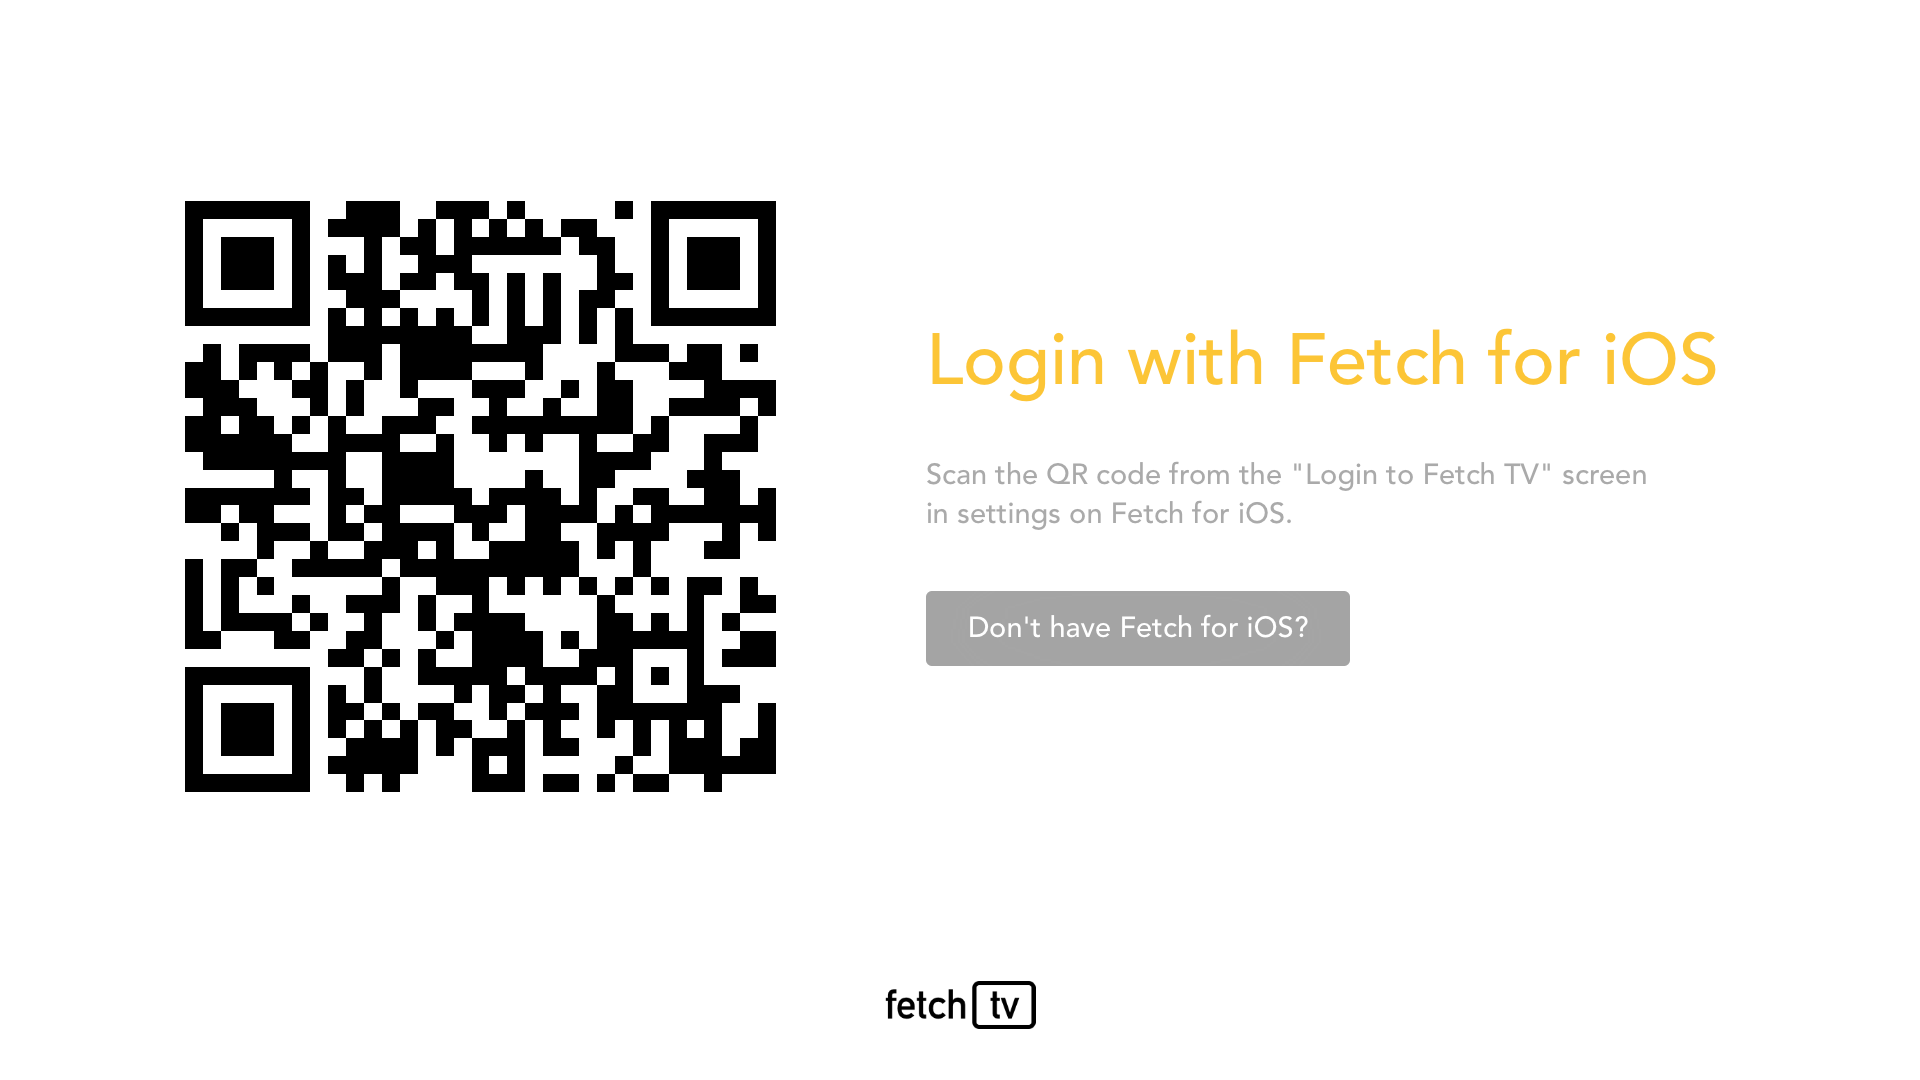 Fetch TV Login Flow